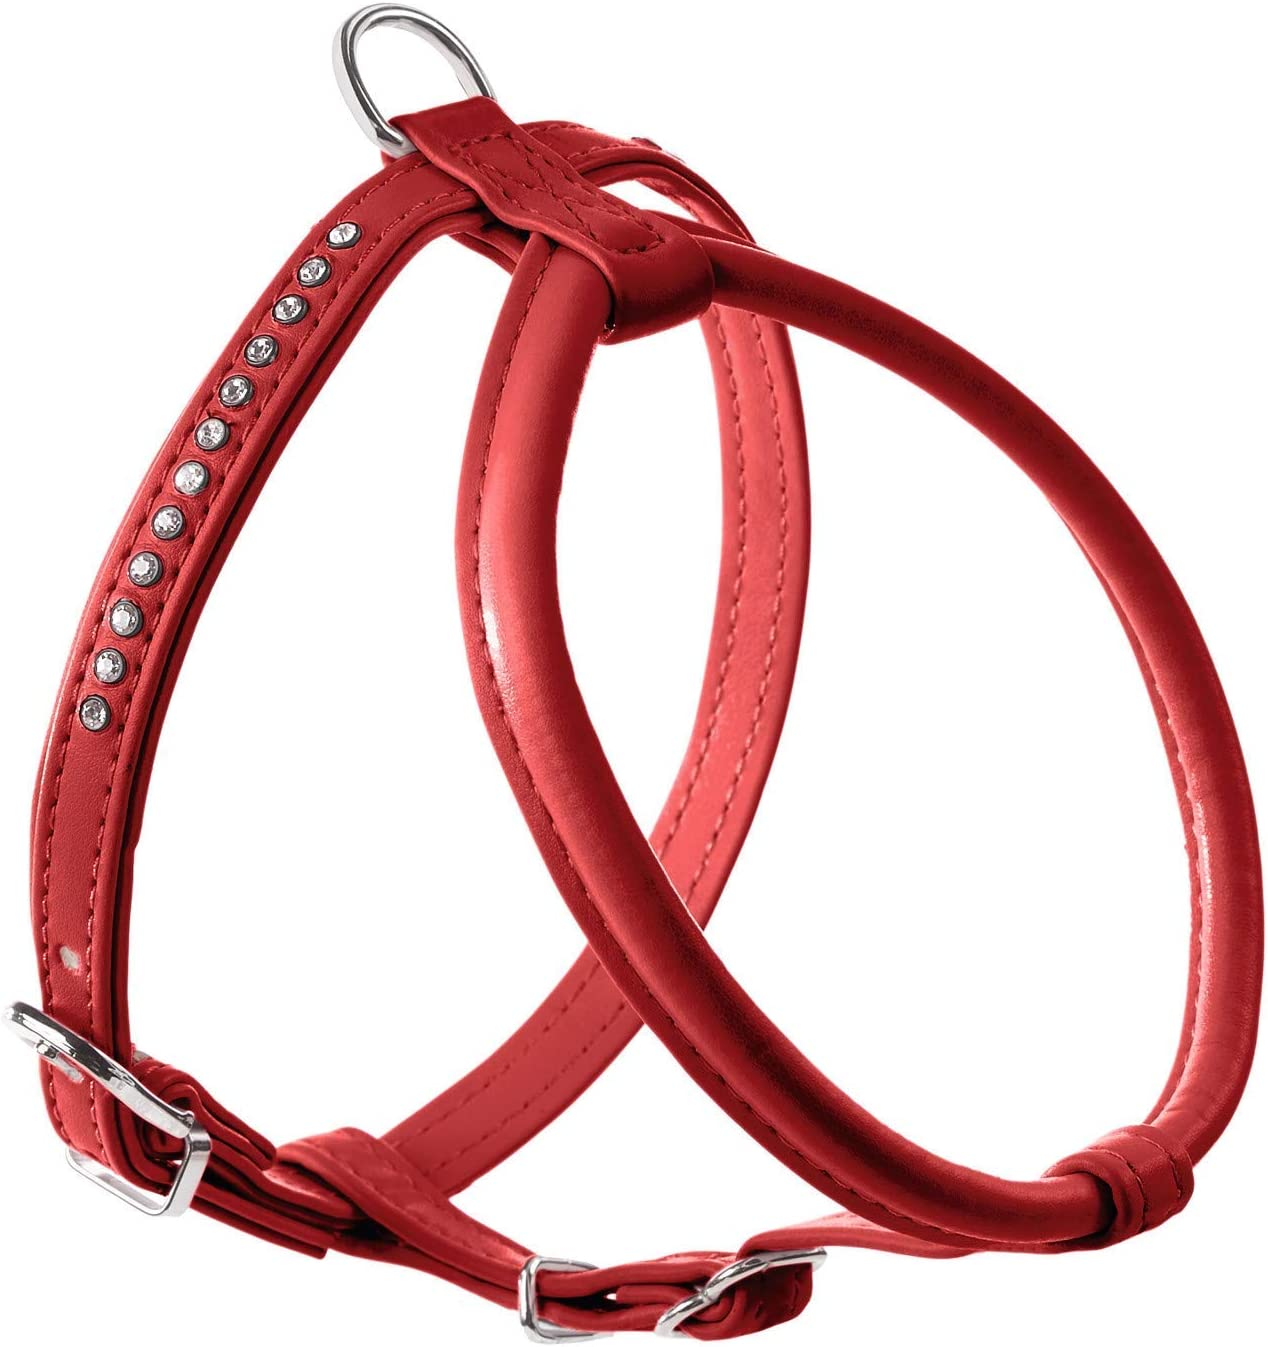 HUNTER Modern Art RandS Petit Faux Luxus Large Leather Harness Super special price Ranking TOP8